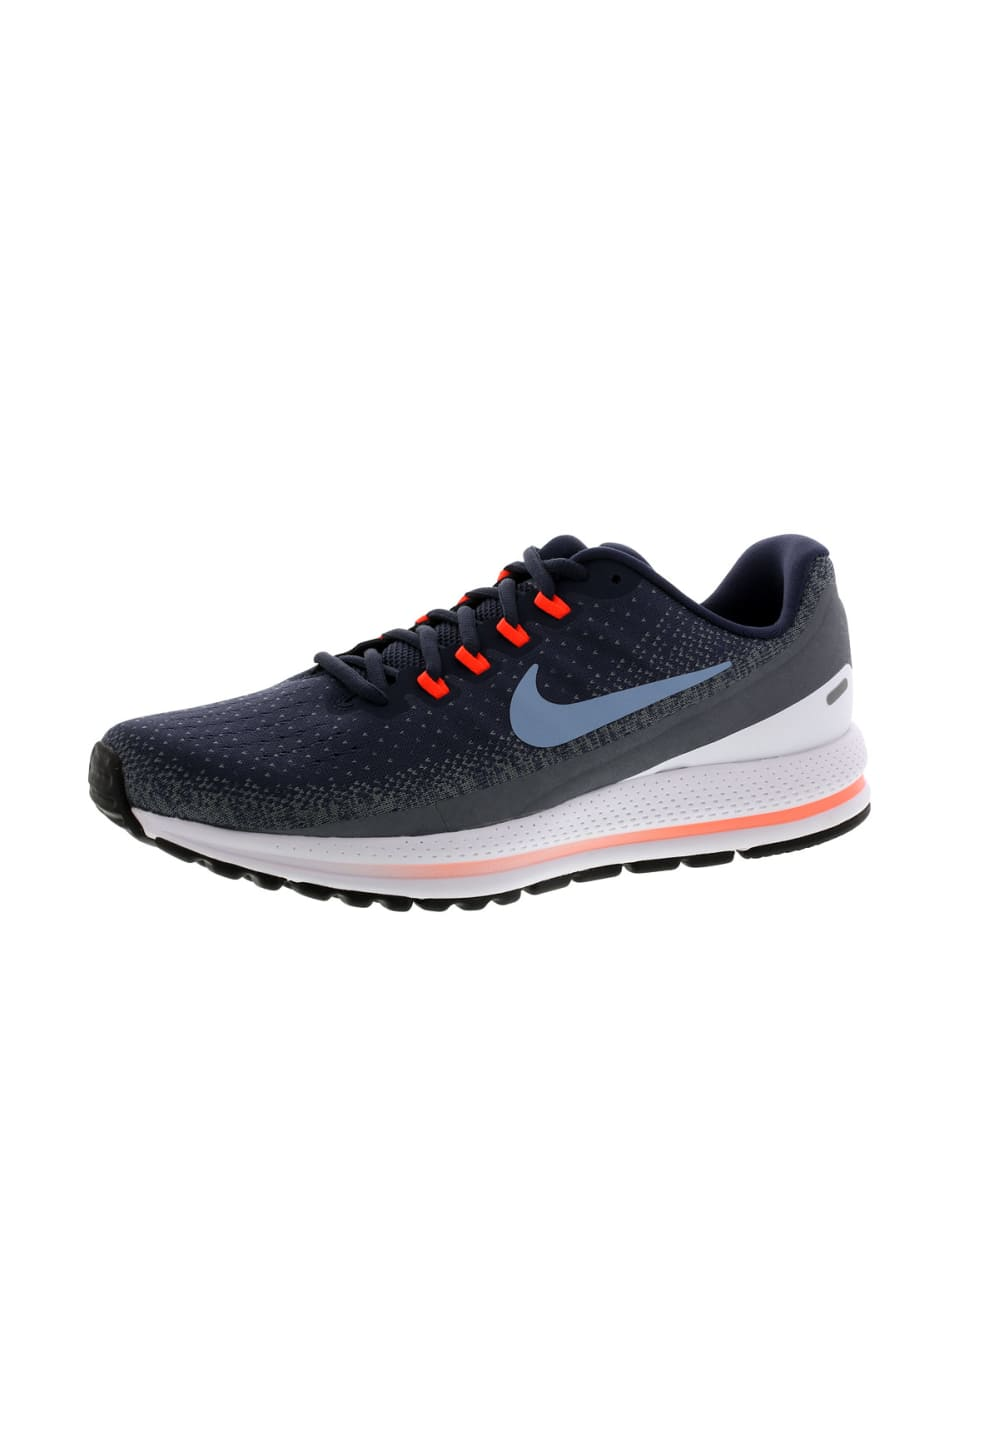 53d4f0a1464 Previous. Next. -60%. This product is currently out of stock. Nike. Air  Zoom Vomero 13 - Running shoes for Men